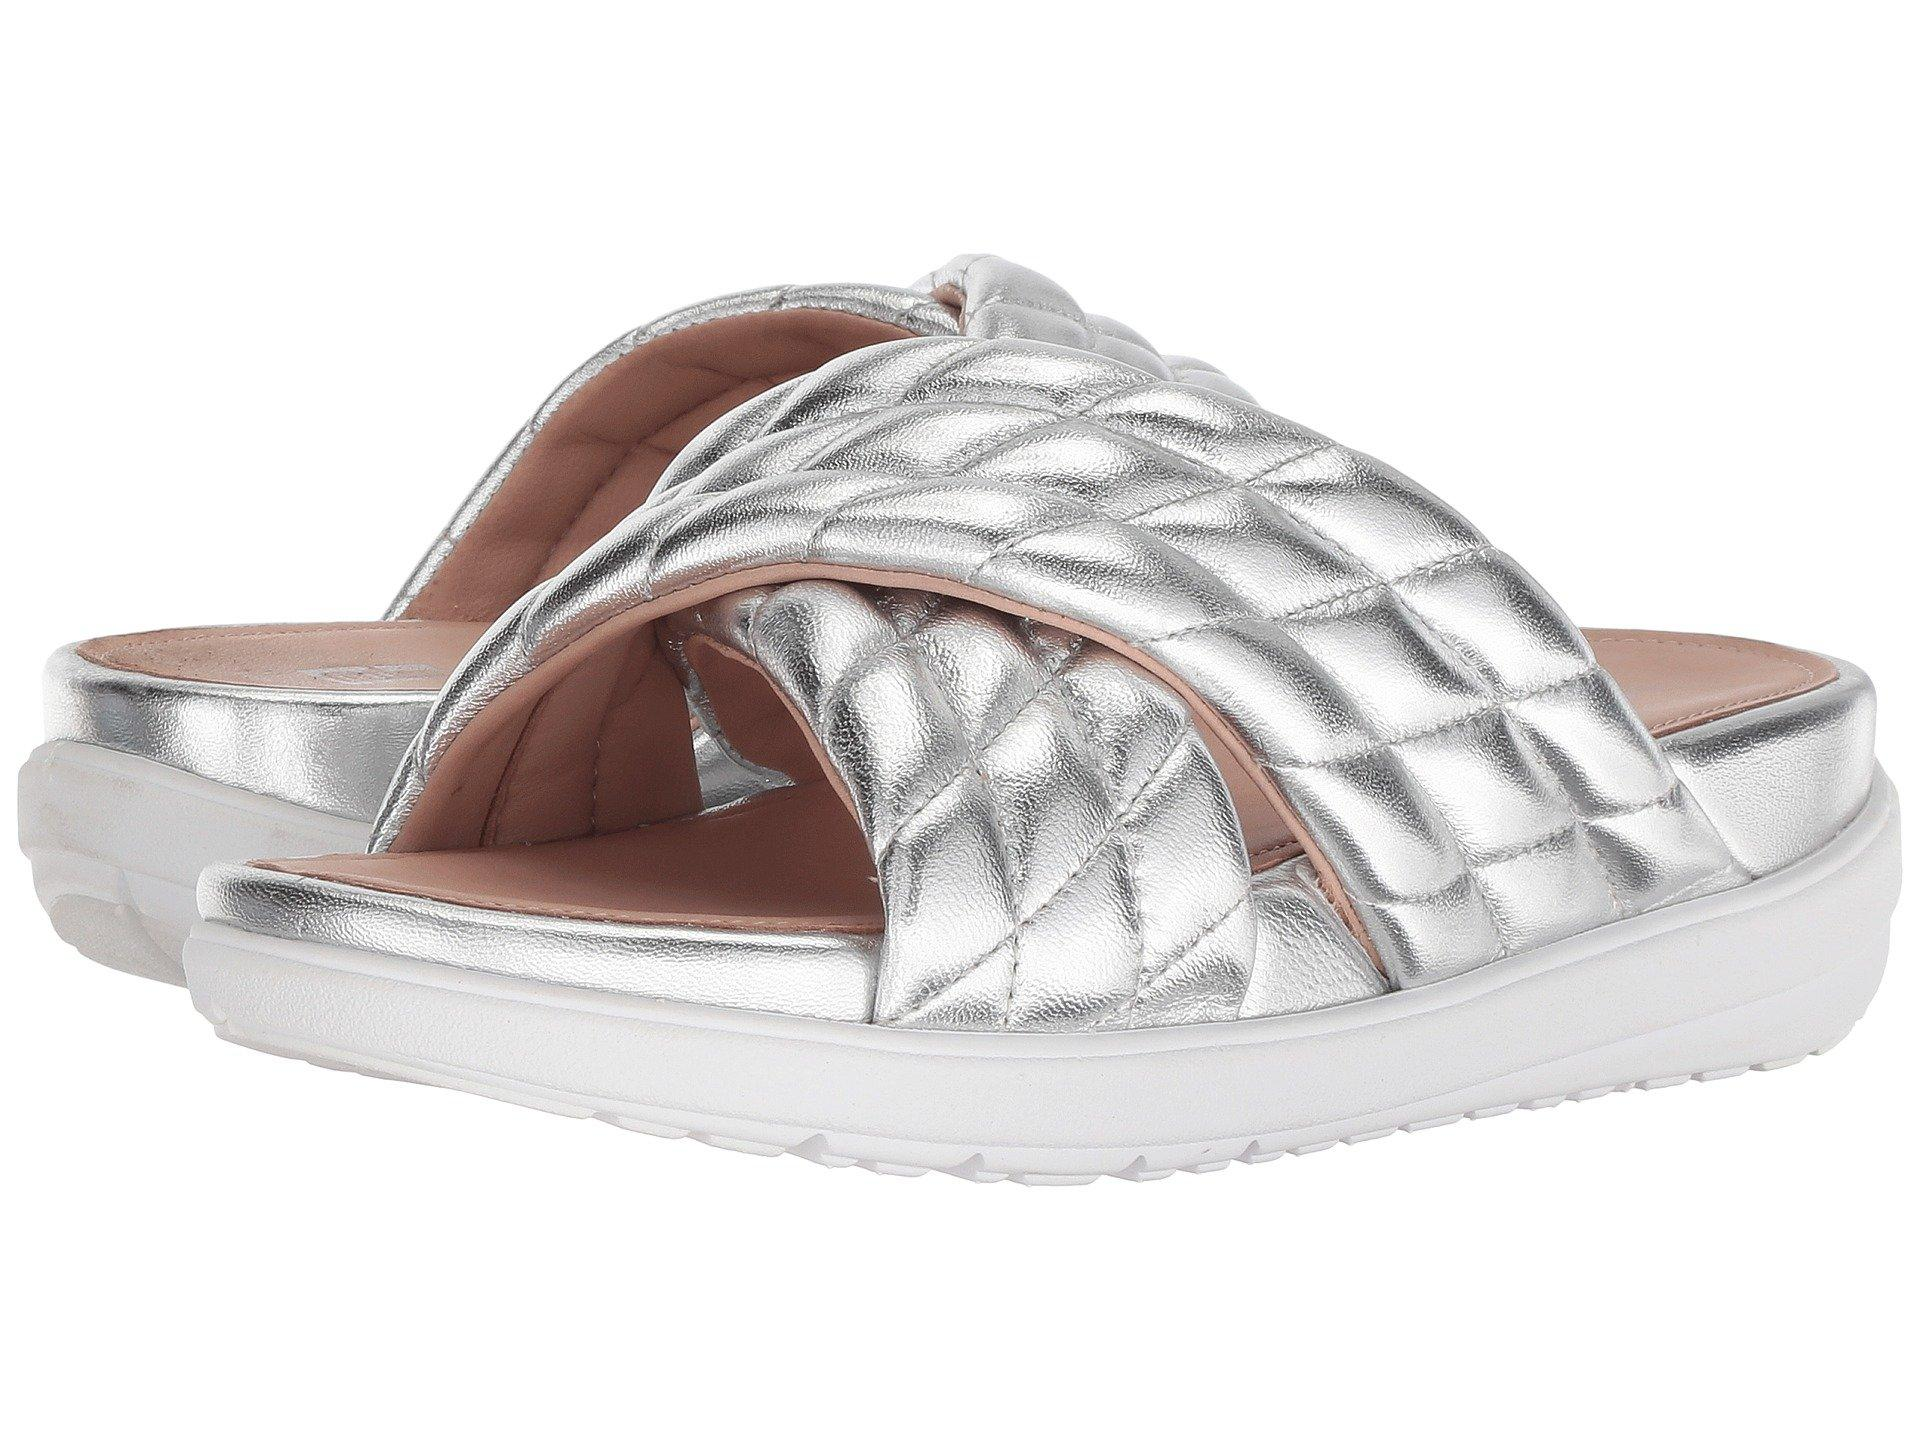 356d2471a0da Lyst - Fitflop Loosh Luxe Slide Sandal in Metallic - Save 55%